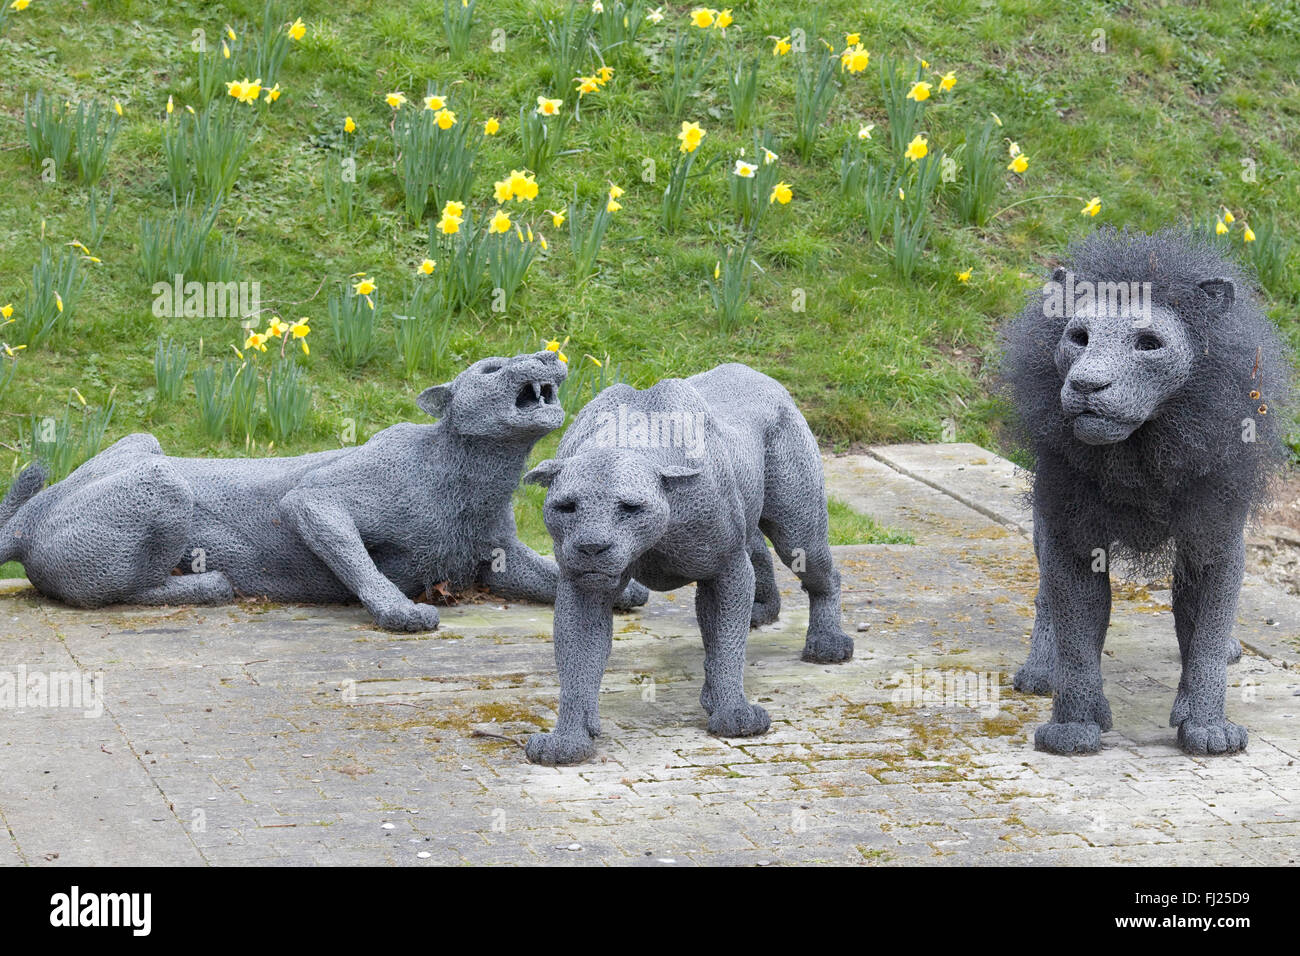 Royal Beasts by Artist Kendra Haste made from wire mesh - Stock Image